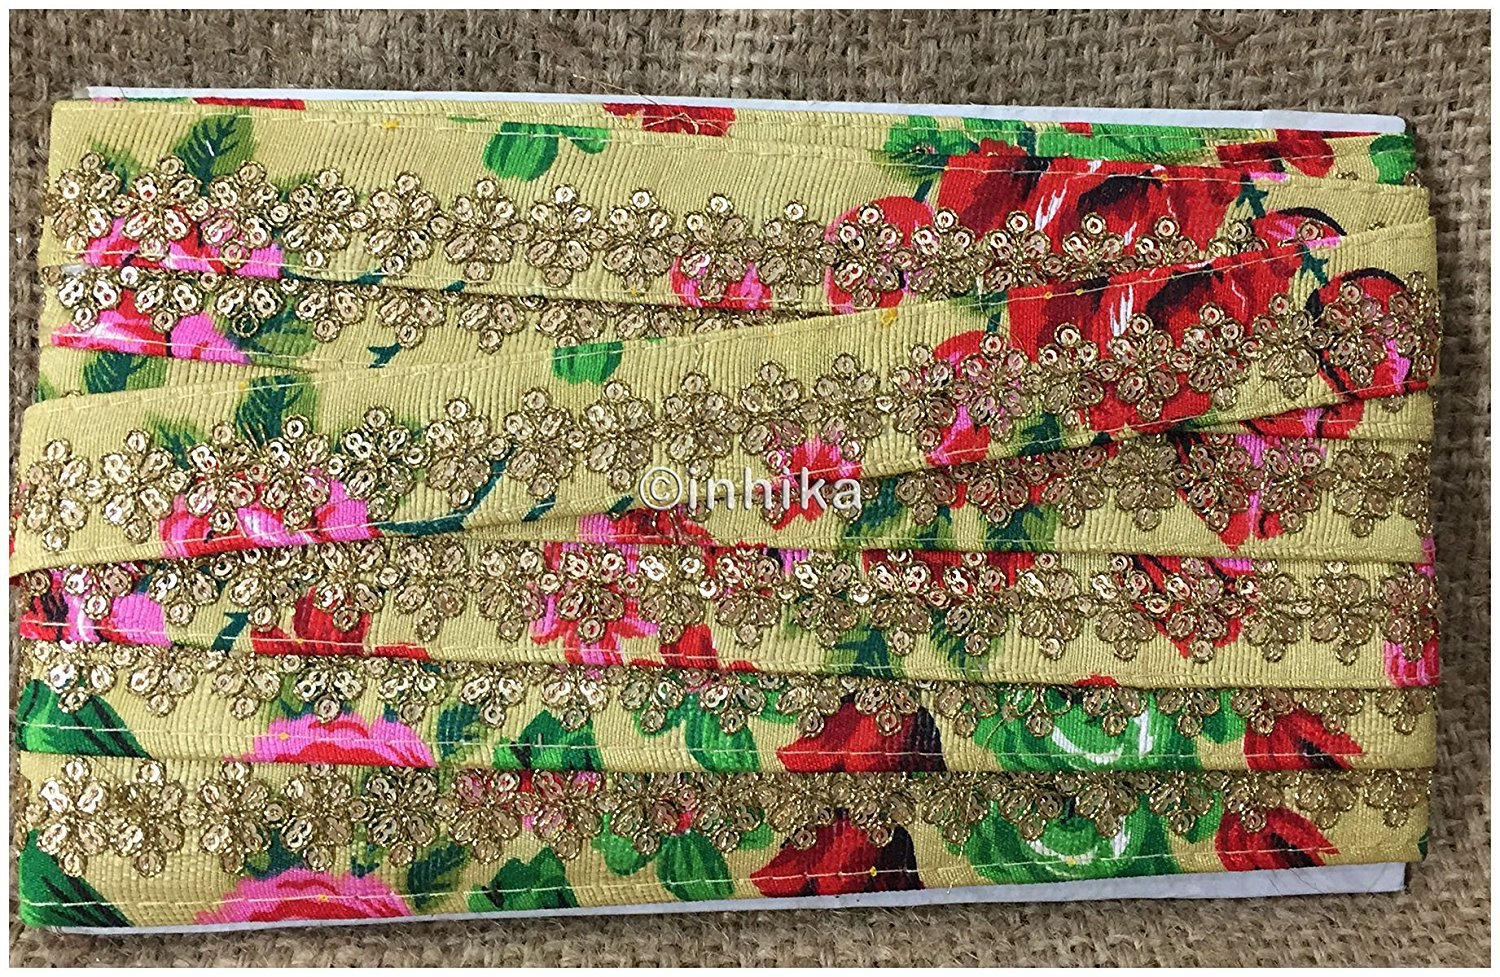 lace trim fabric garment accessories suppliers in mumbai Beige-Embroidered-Sequins-Printed-Base-1-Inch-Wide-3200